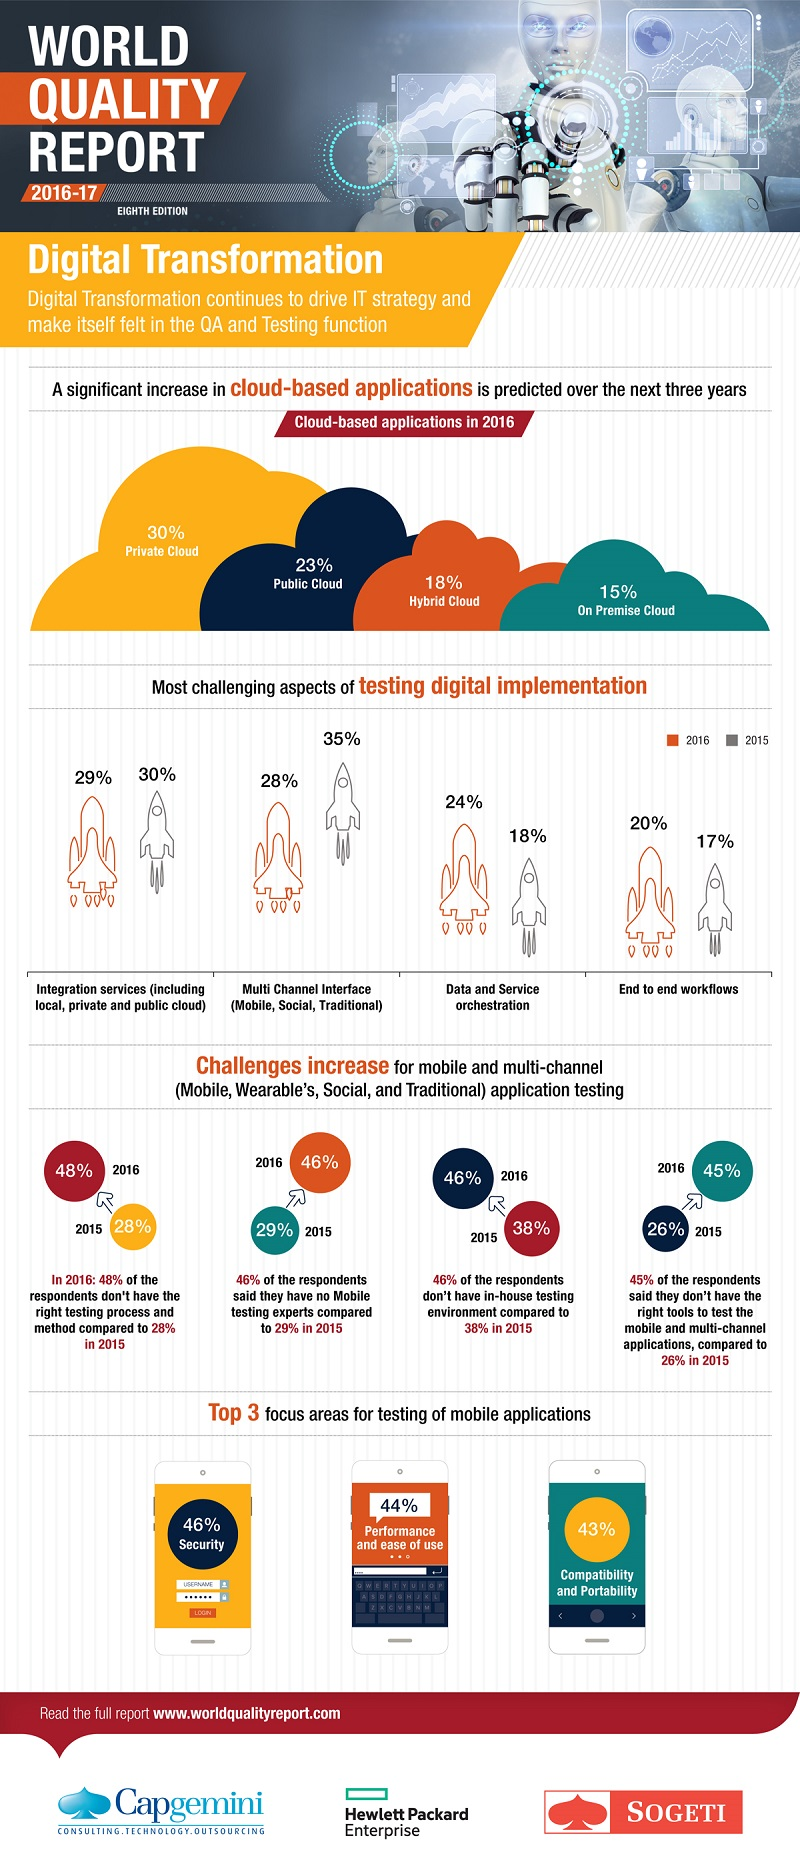 World Quality Report - Digital Transformation infographic